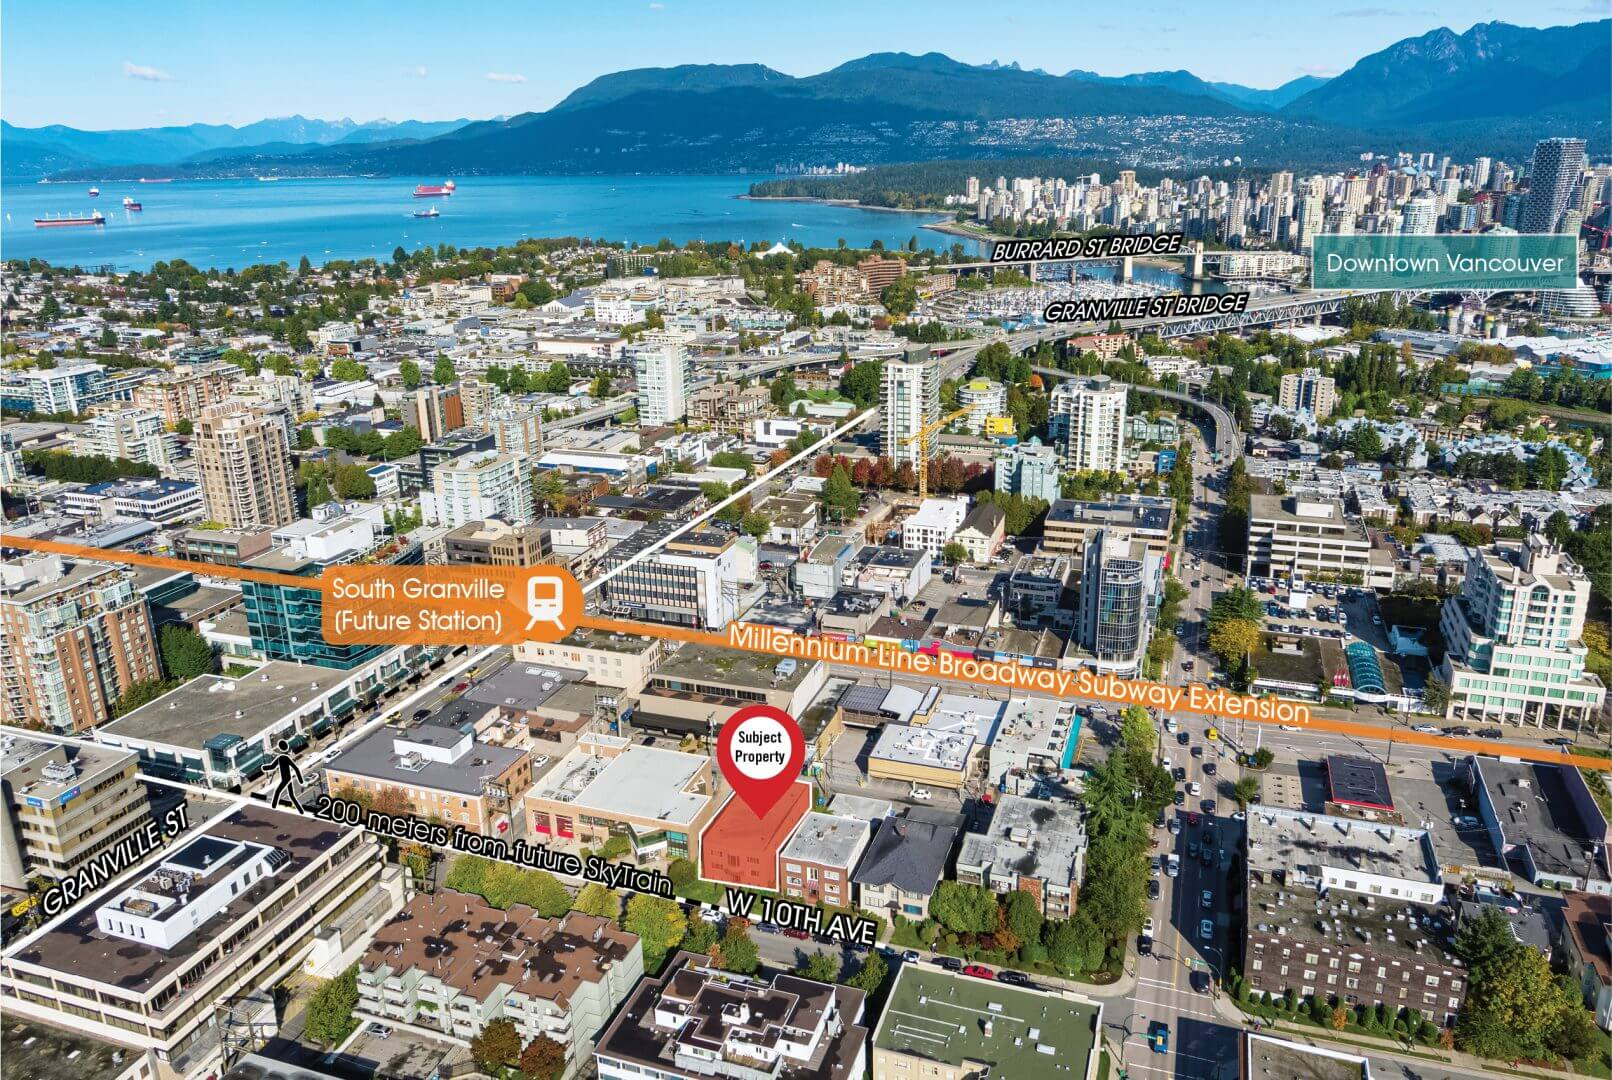 Lee & Associates Vancouver Negotiates Sale of a Multifamily Property in the South Granville Area